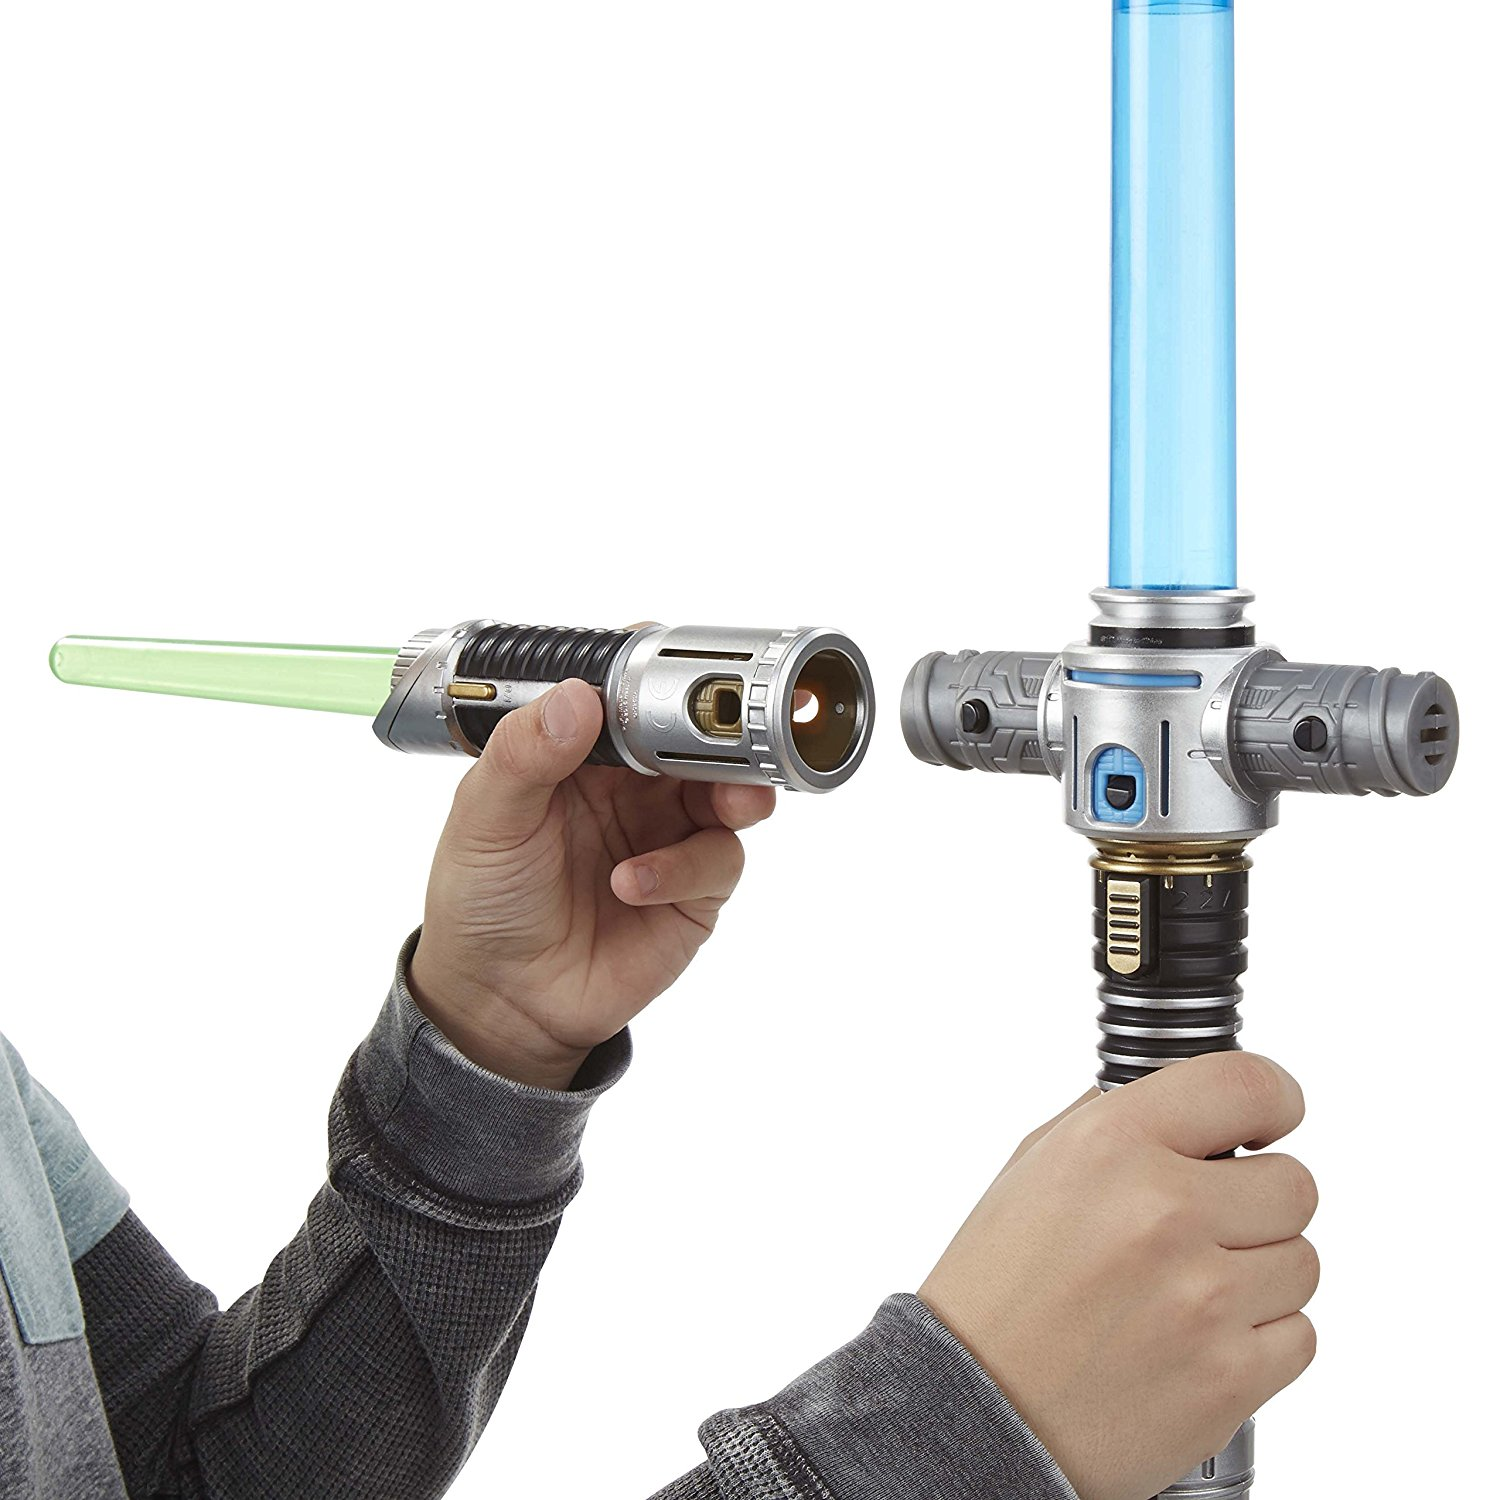 Star Wars lightsaber toy